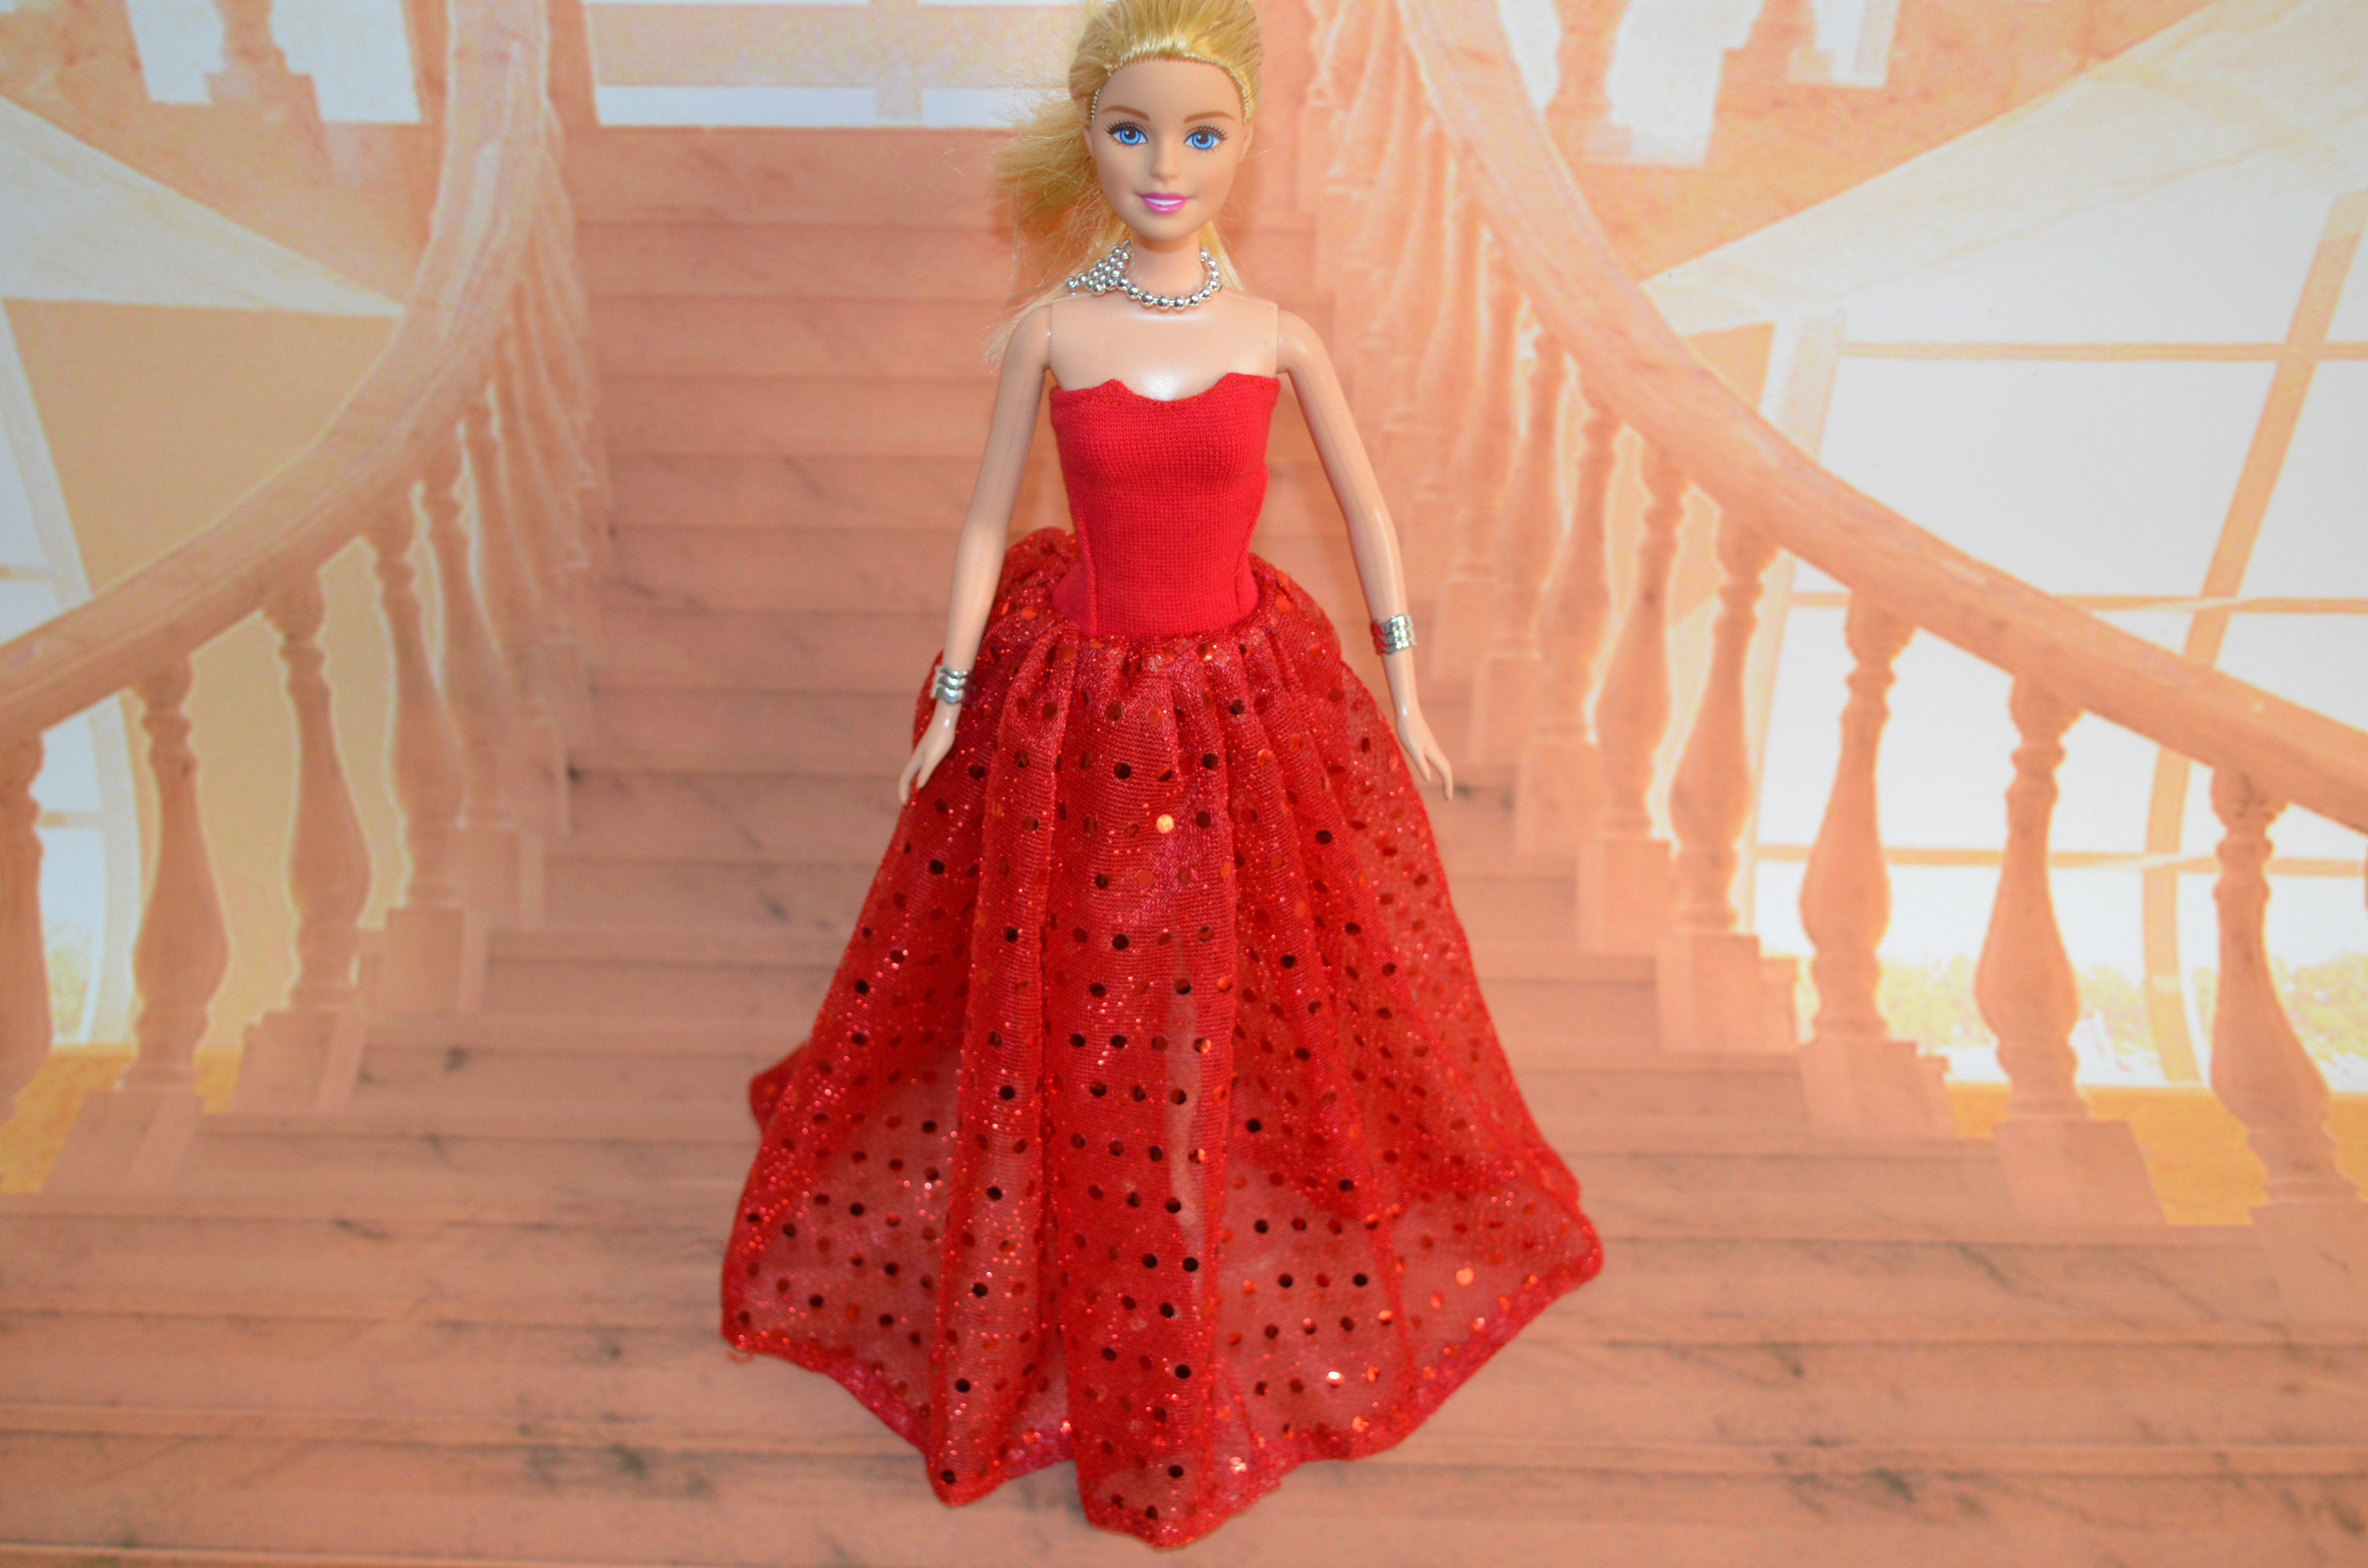 case for barbie fashion outfits accessories, Barbie doll clothes, bjd doll clothing red wedding gown(China (Mainland))